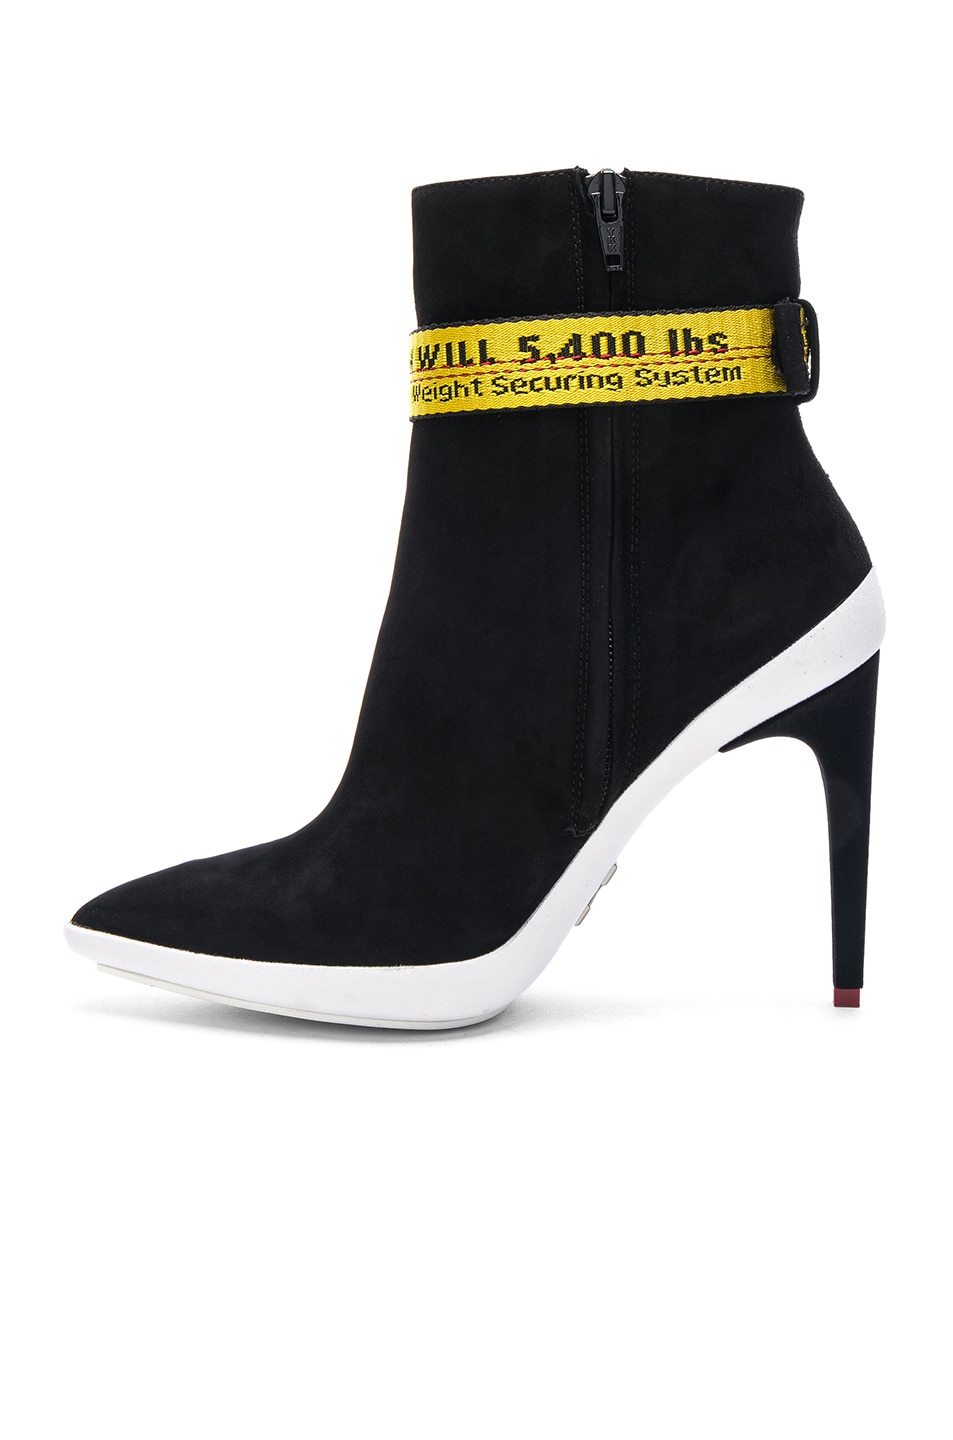 8b28314f58e Image 5 of OFF-WHITE Ankle Strap Suede Boots in Black   Yellow